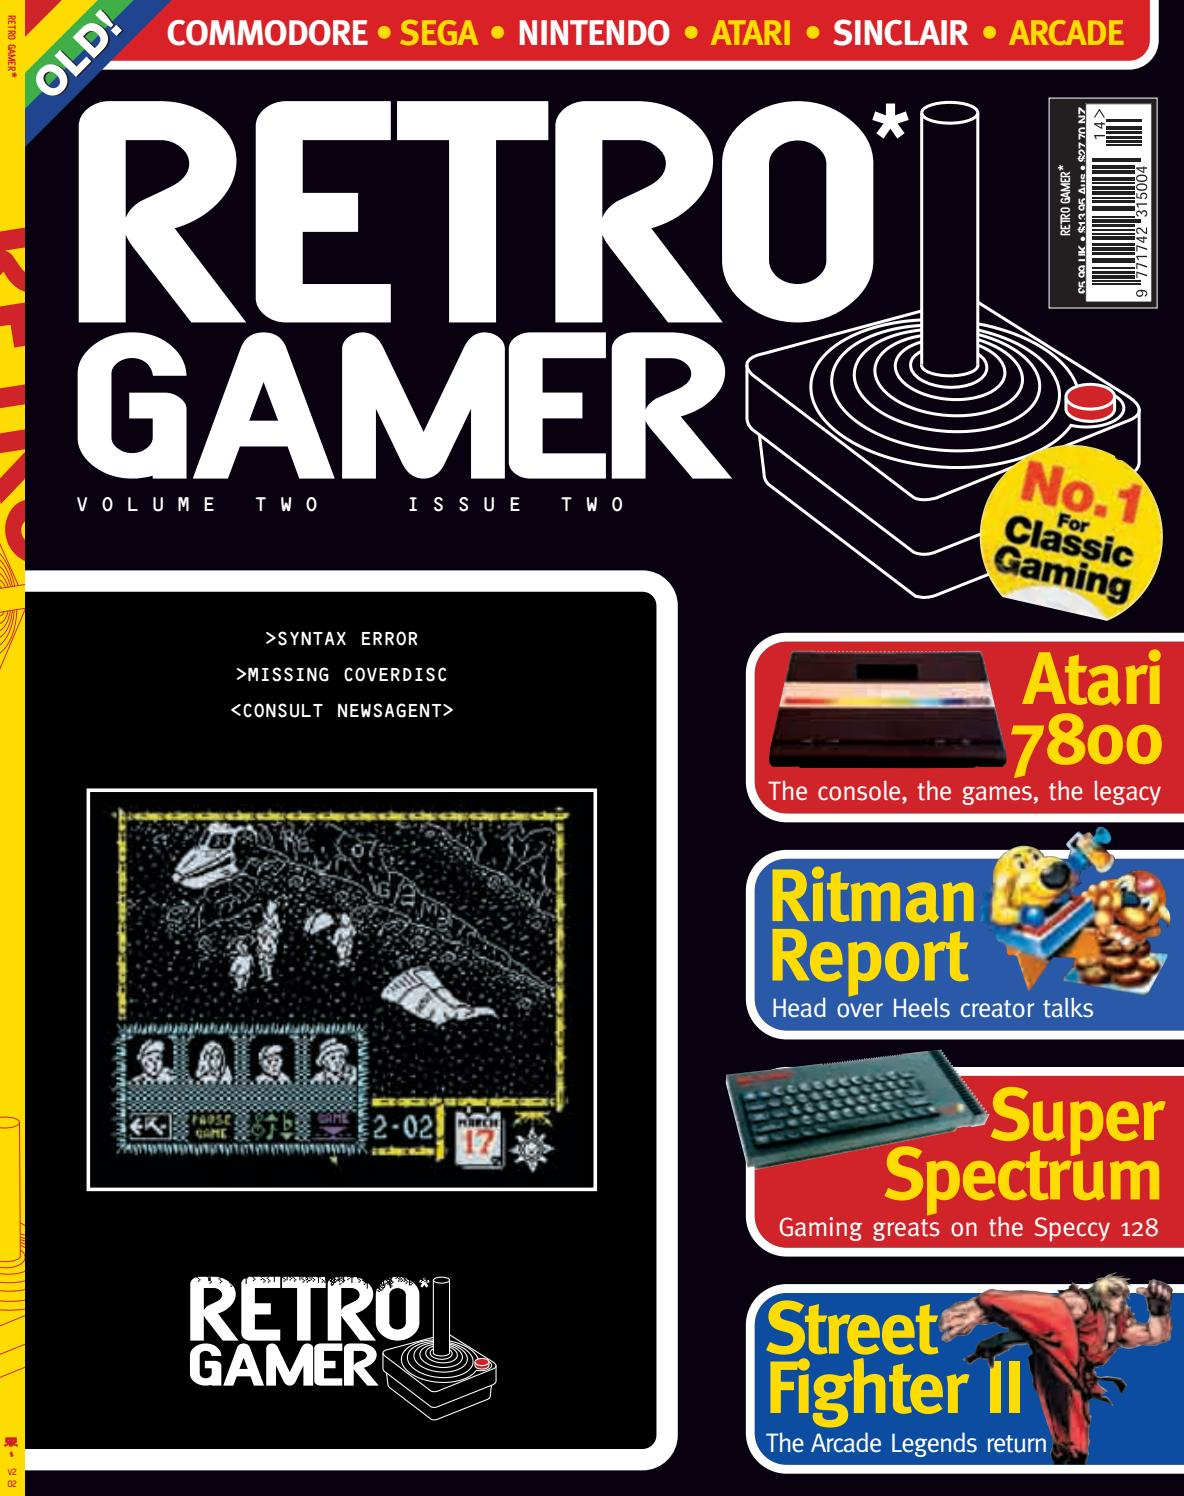 Retro Gamer nº 014 by Revistas Clássicas de Games - issuu